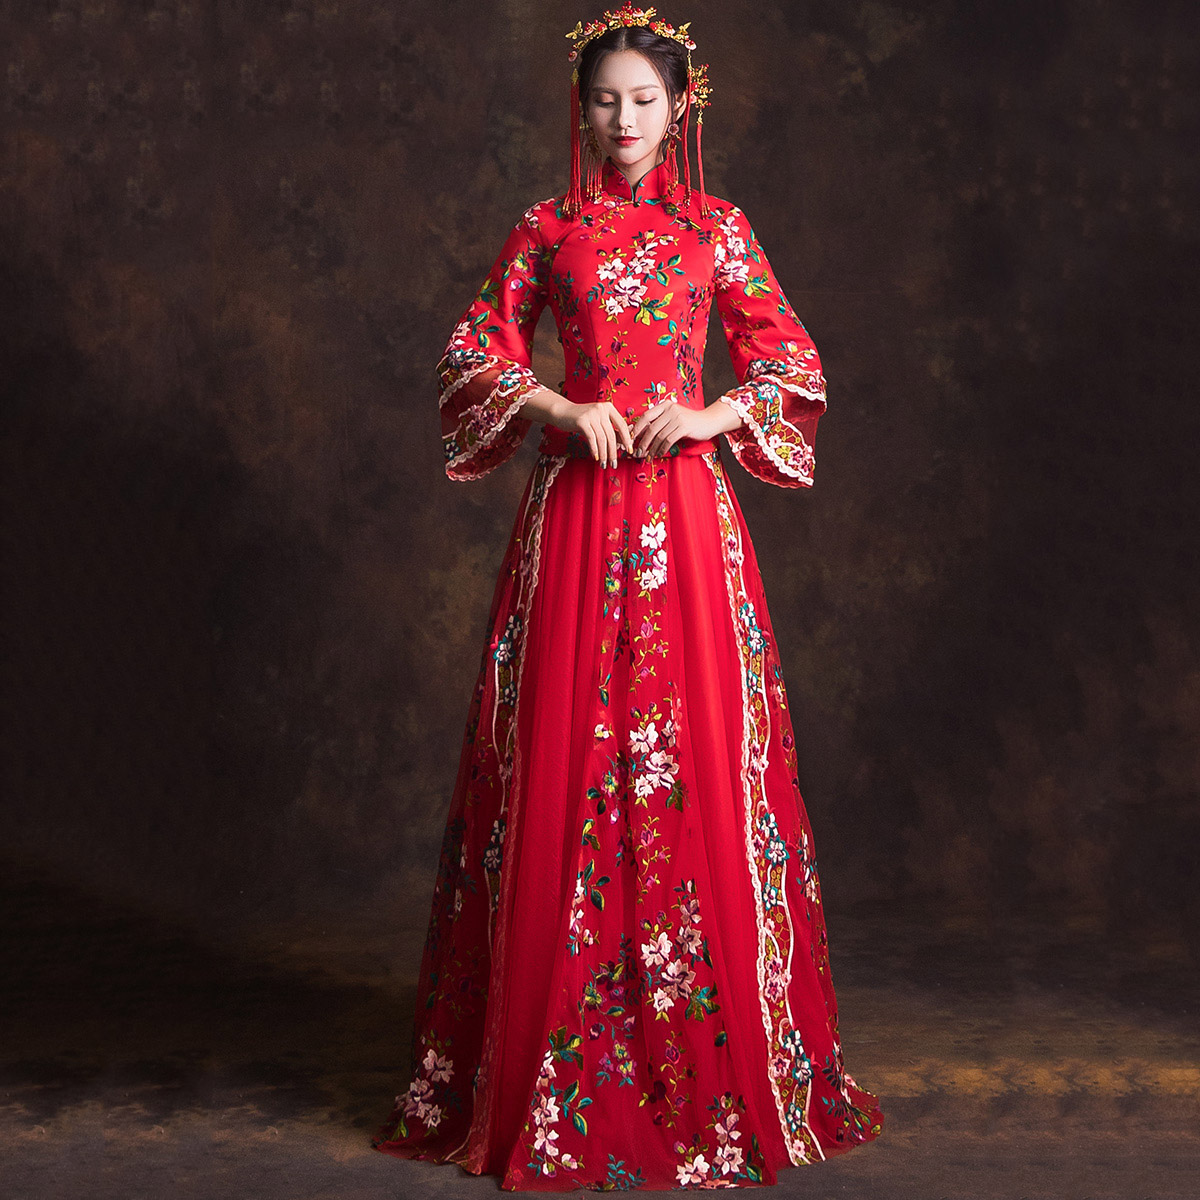 Vintage Chinese Style Cheongsam Embroidery Flower Mesh Dress Toast Clothing Elegant Qipao Full Length Exquisite Evening Gowns